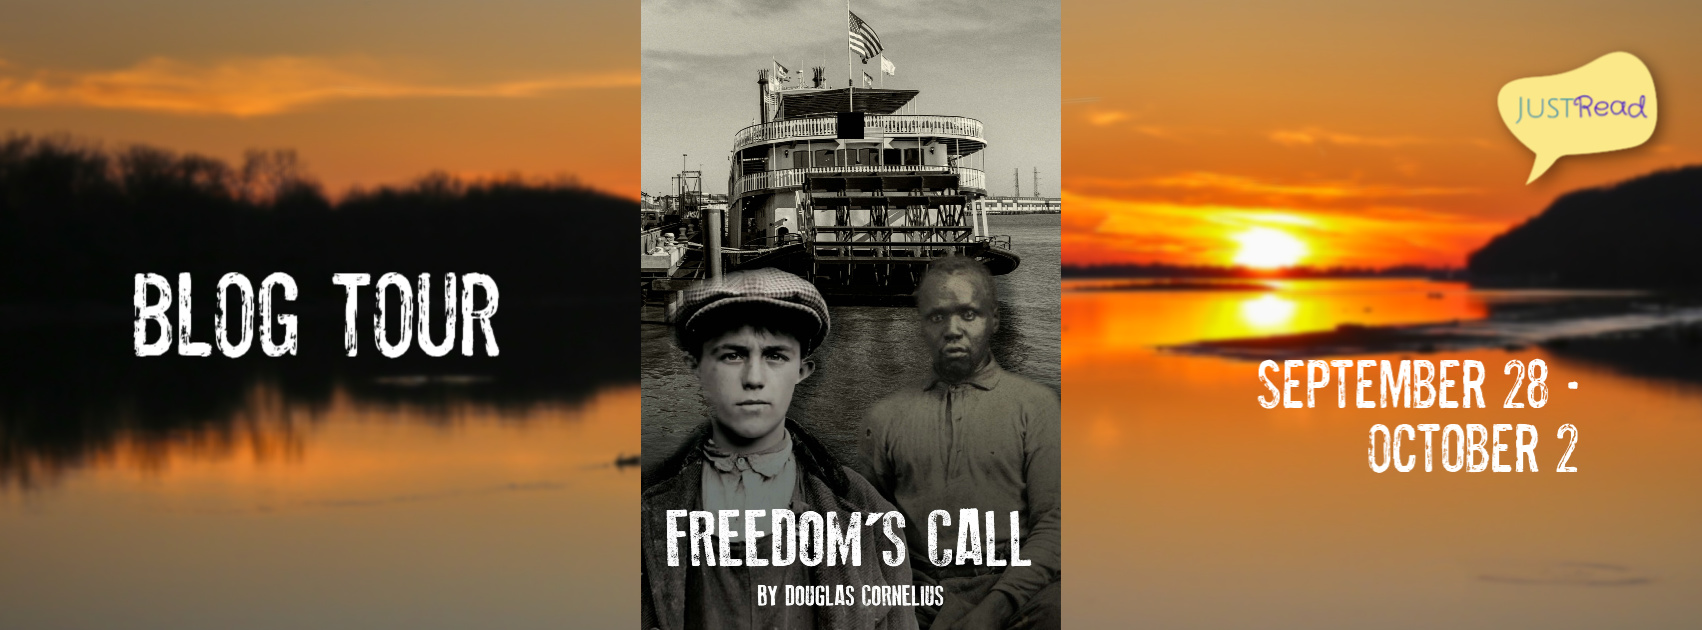 Welcome to the Freedom's Call Blog Tour & Giveaway!